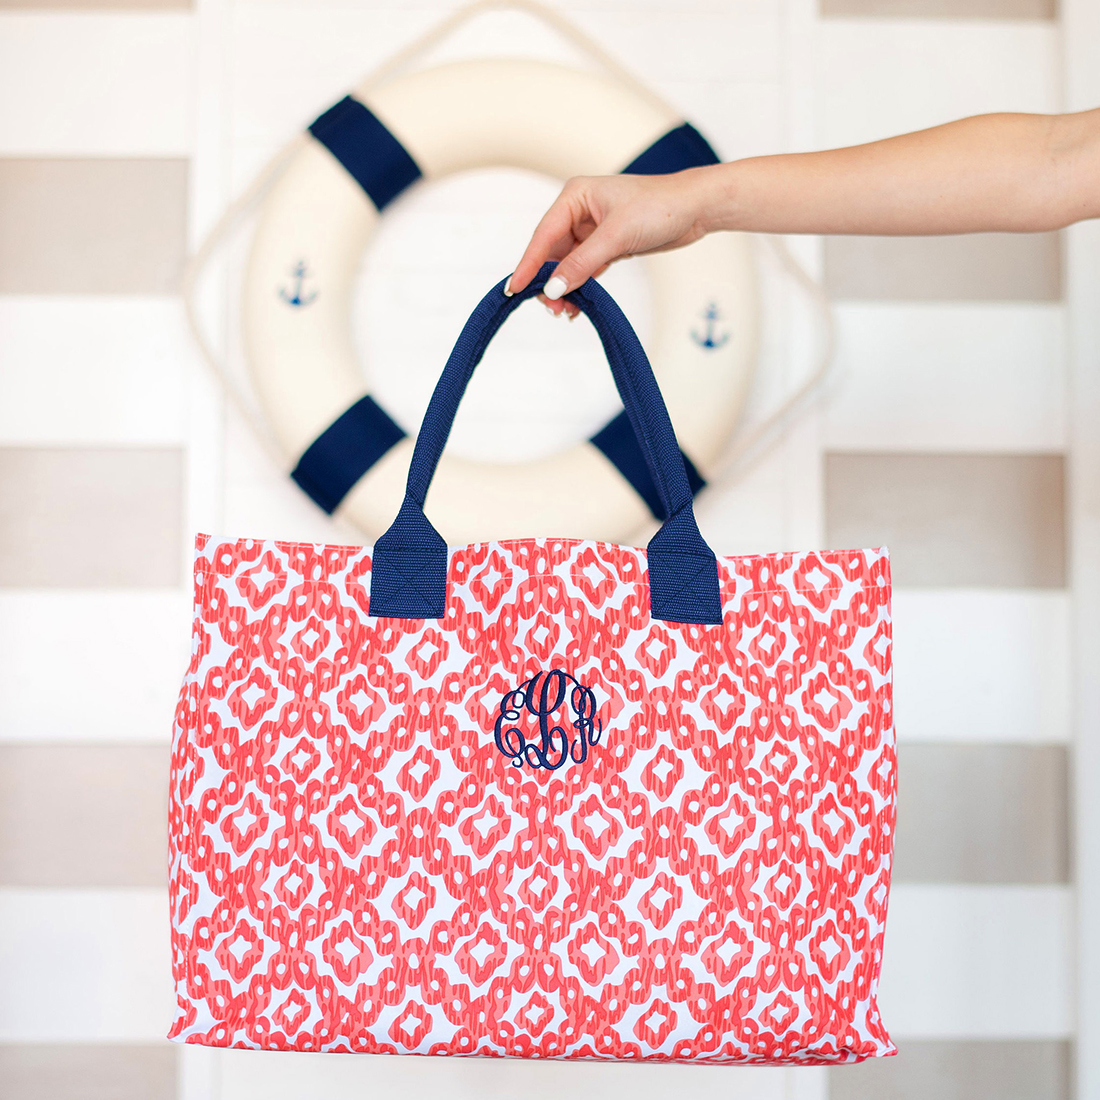 2020 Patterned Tote